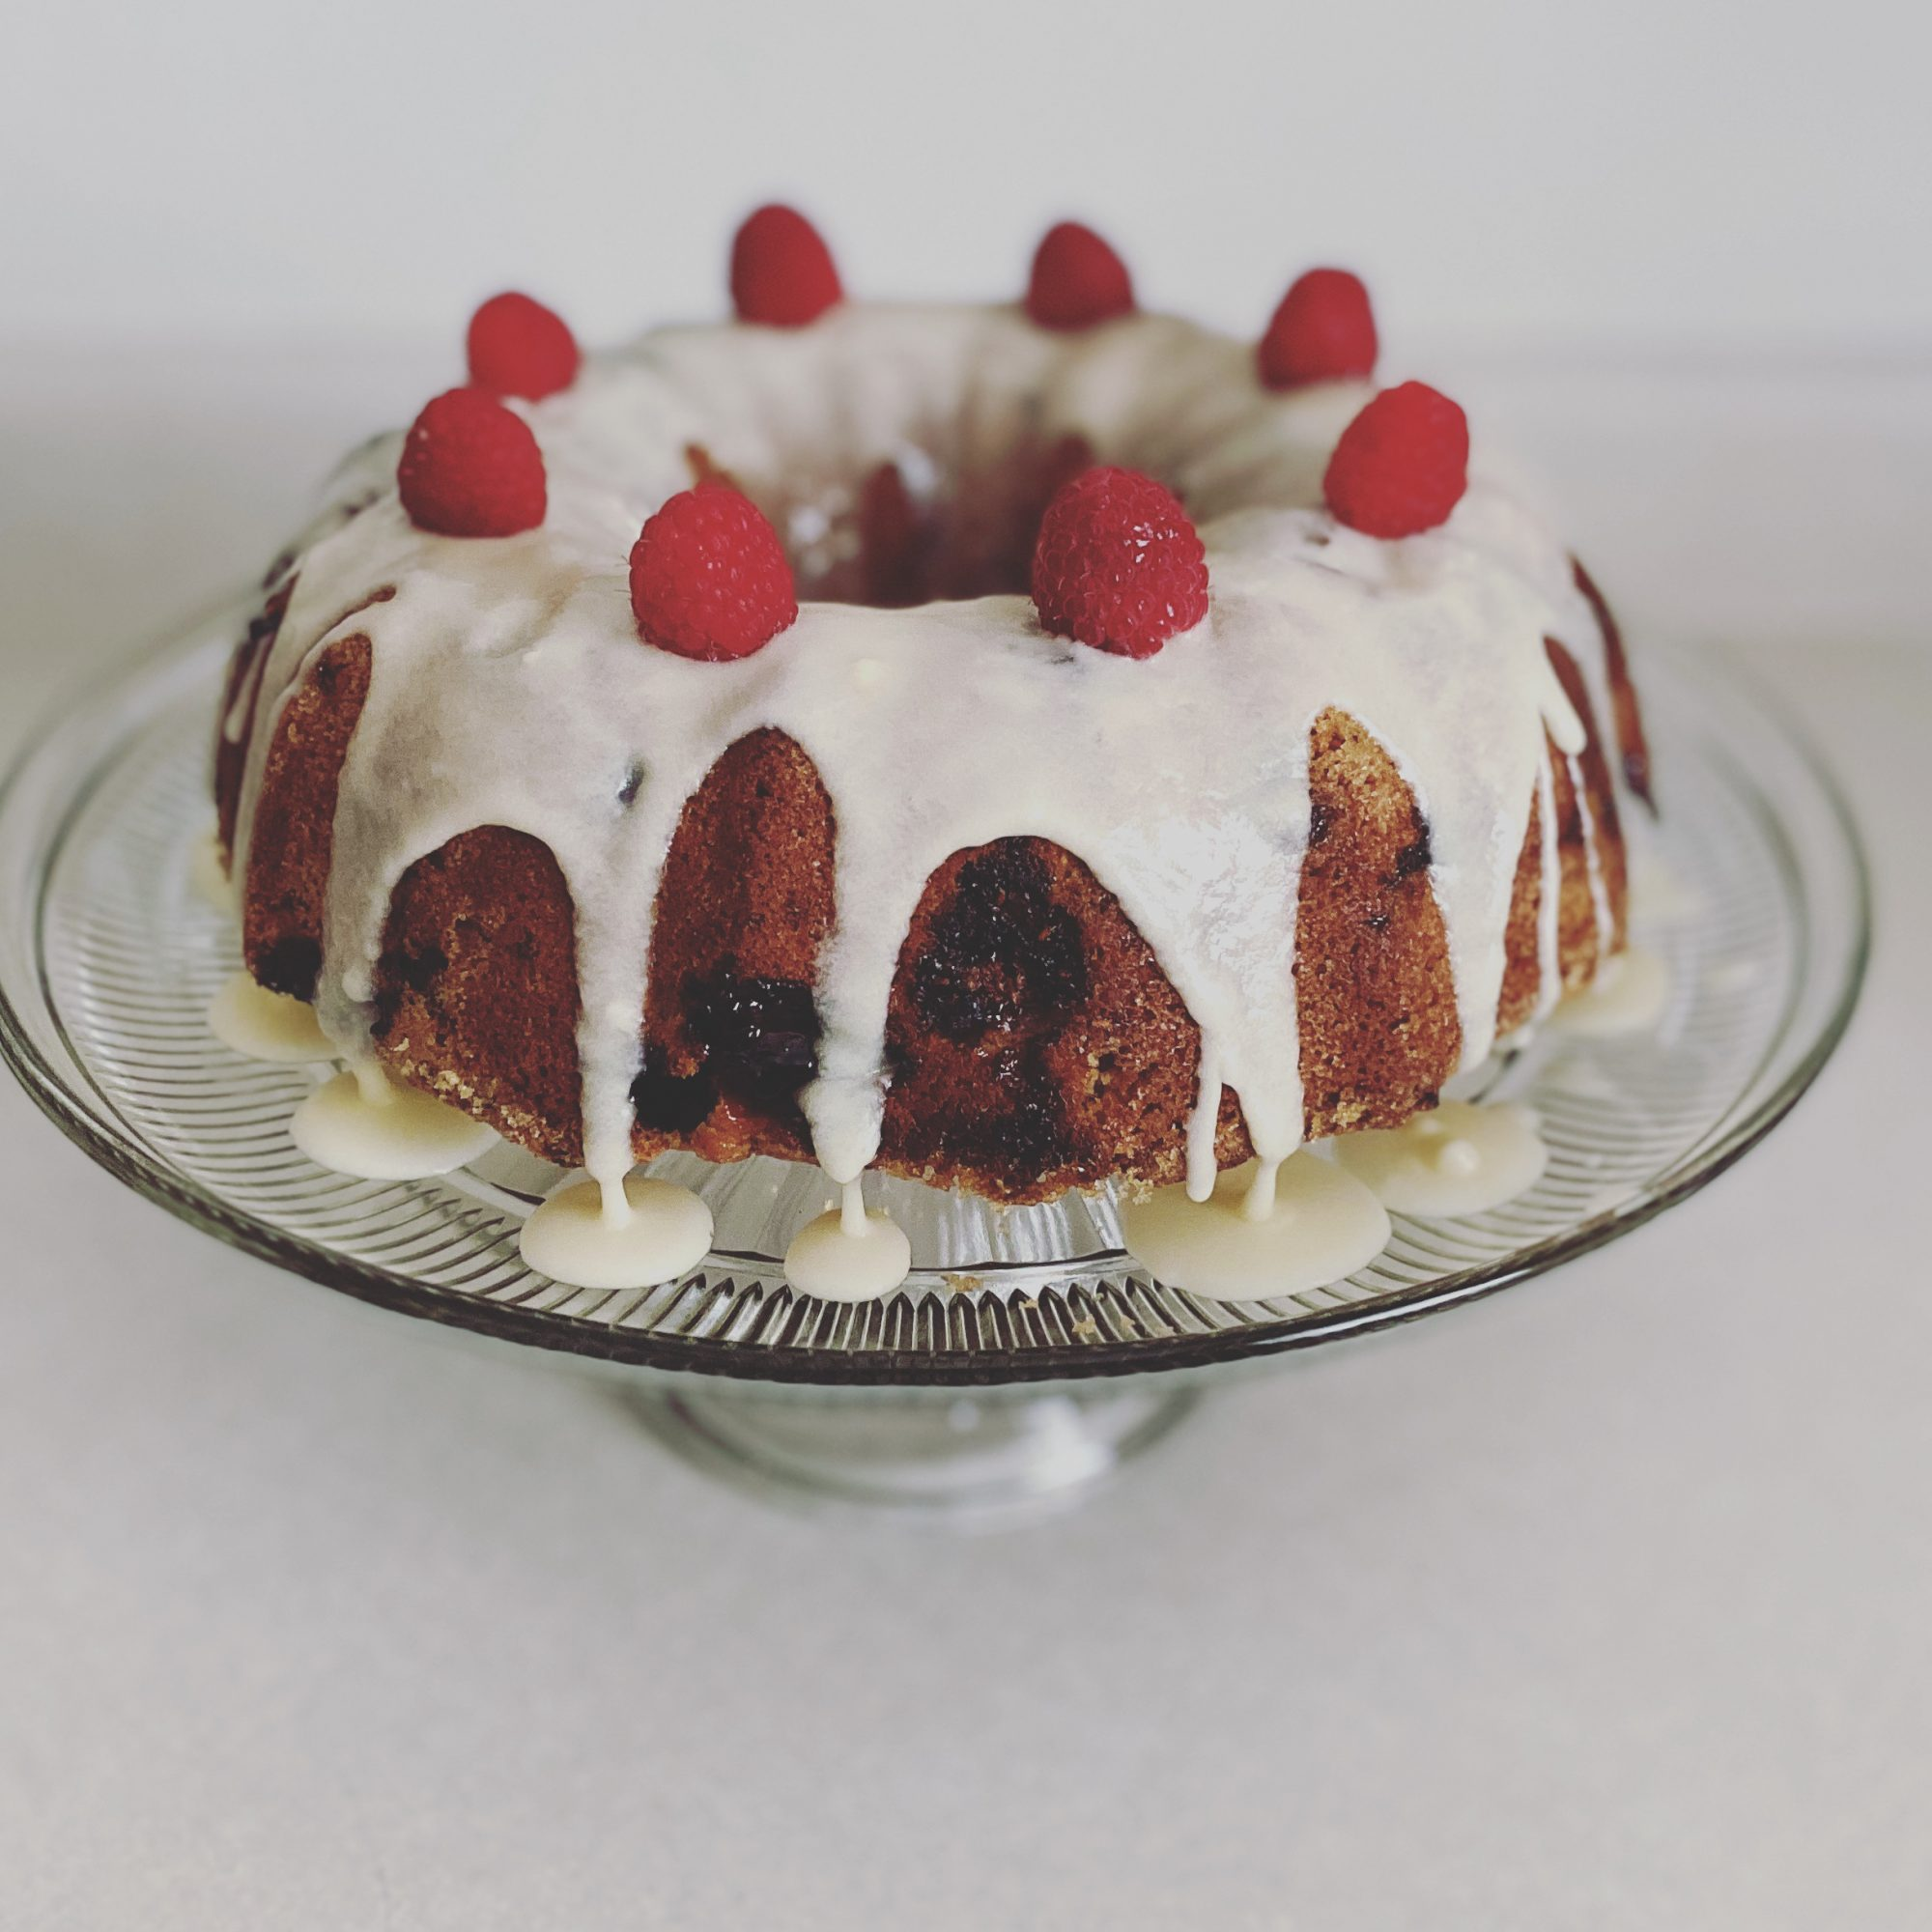 blueberry pound cake with icing glaze and raspberry topping